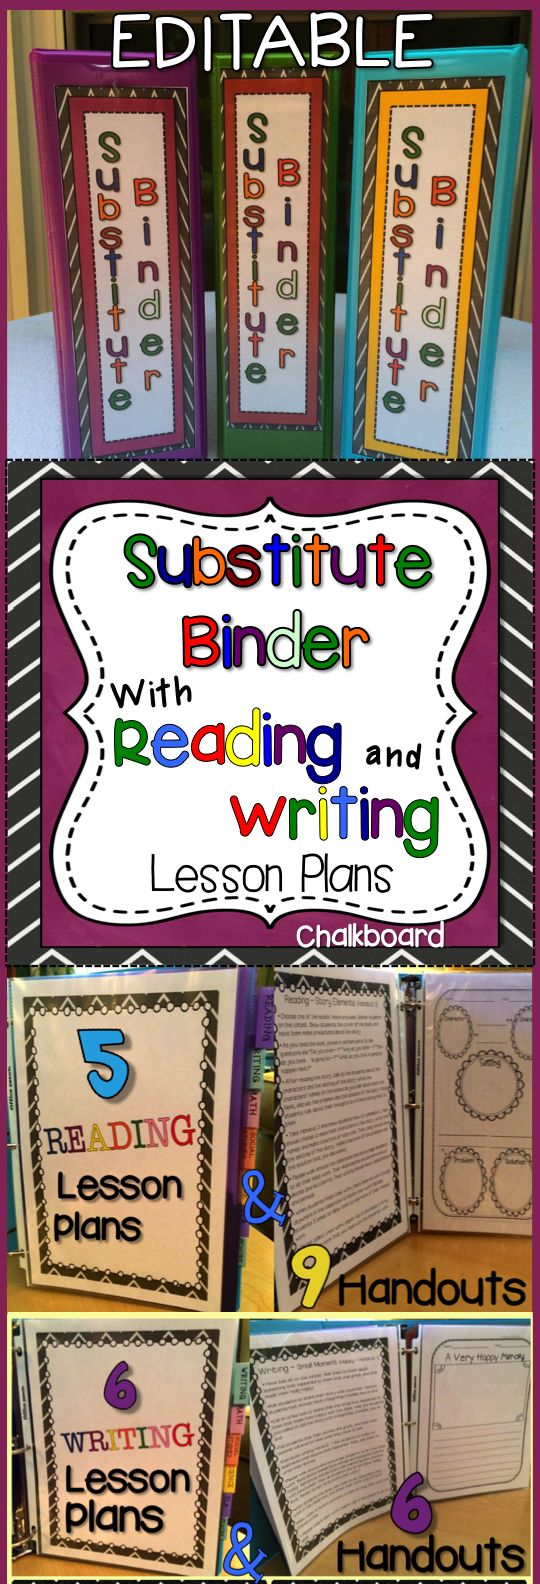 Substitute Binder with Reading and Writing Lesson Plans! Cover choices and EDITABLE templates that will make it easy for you to take a day off when you need one! Several Reading and Writing lesson plans PLUS handouts that go with each lesson are included. Comes with step by step directions.